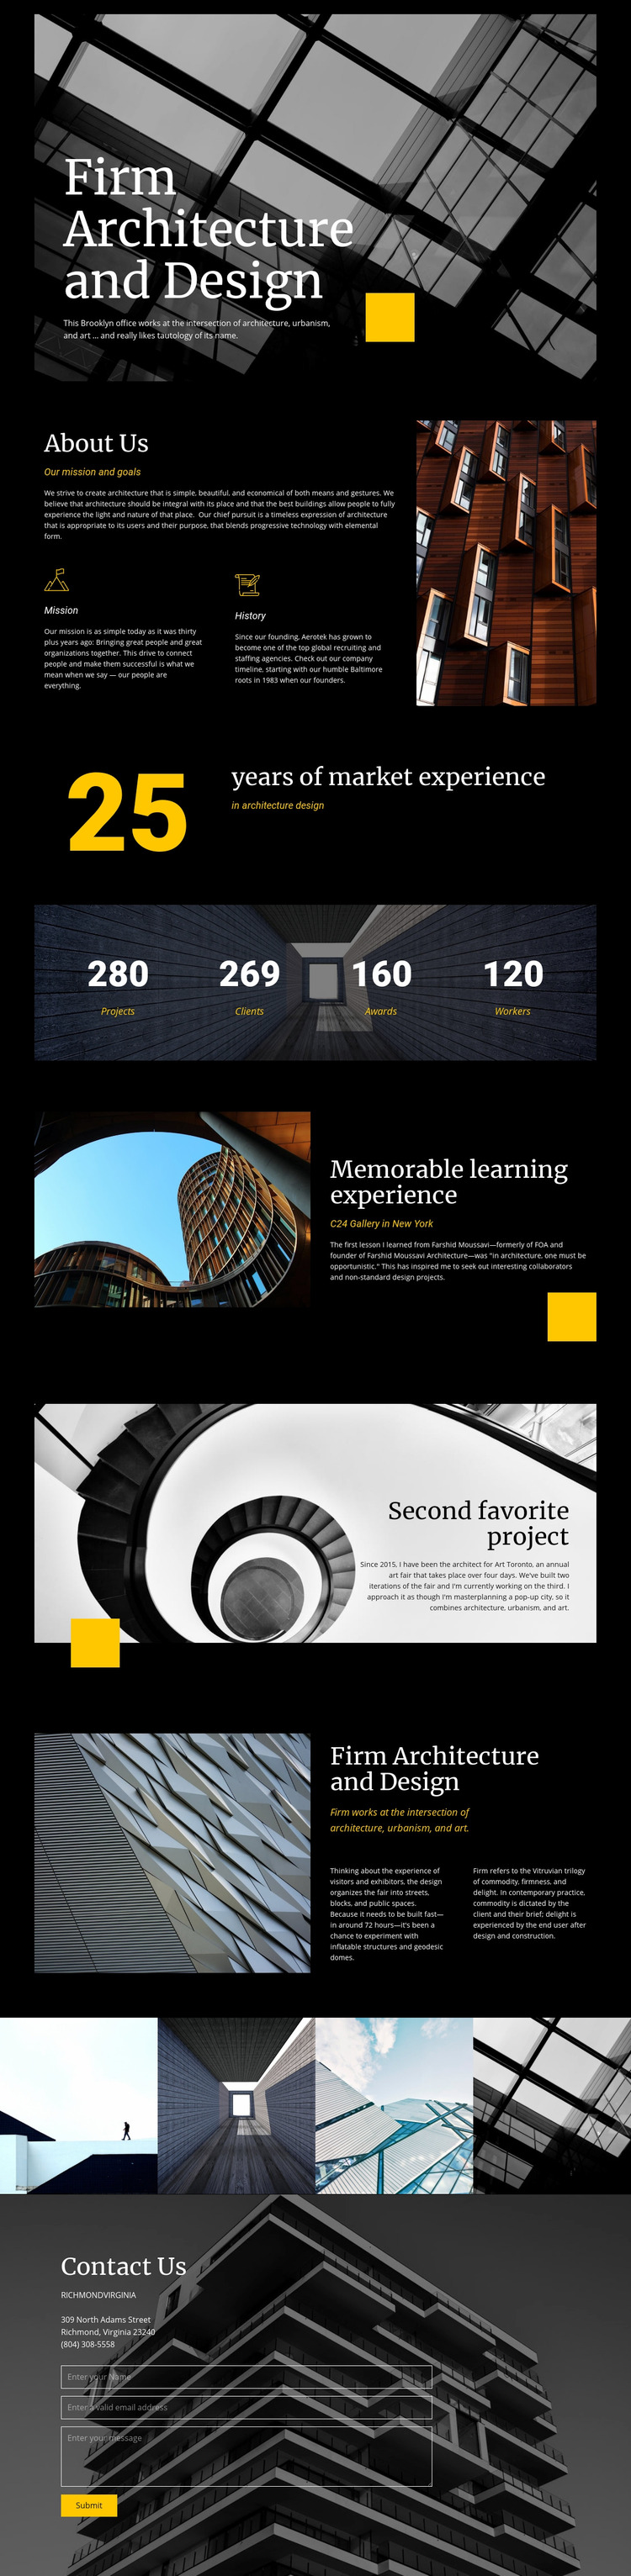 Firm architecture and Design Website Maker